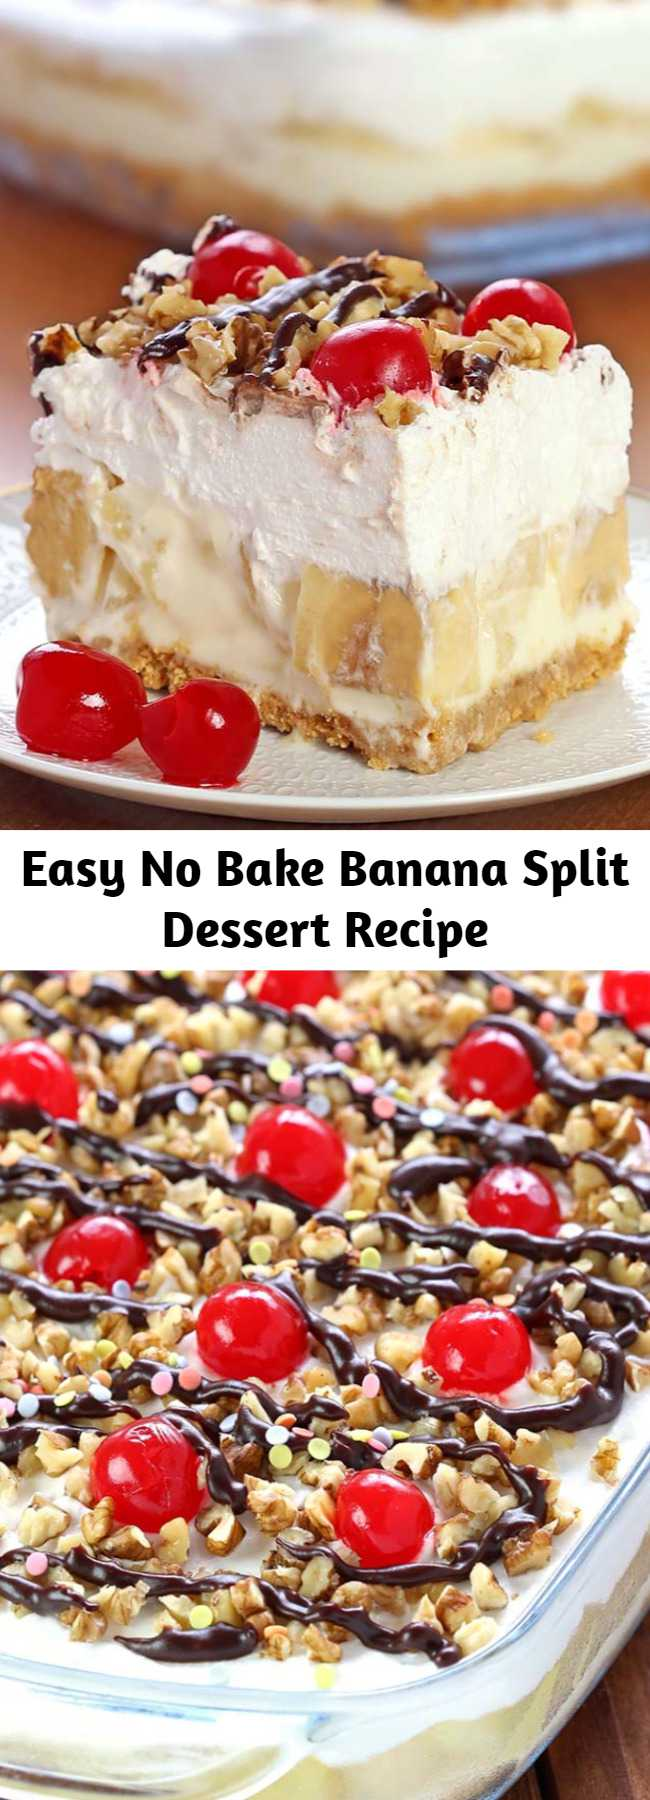 Delicious, rich and creamy, with all the ingredients you love in a banana split, this no-bake Banana Split dessert will be one you make again and again. Perfect summer dessert. #summer #dessert